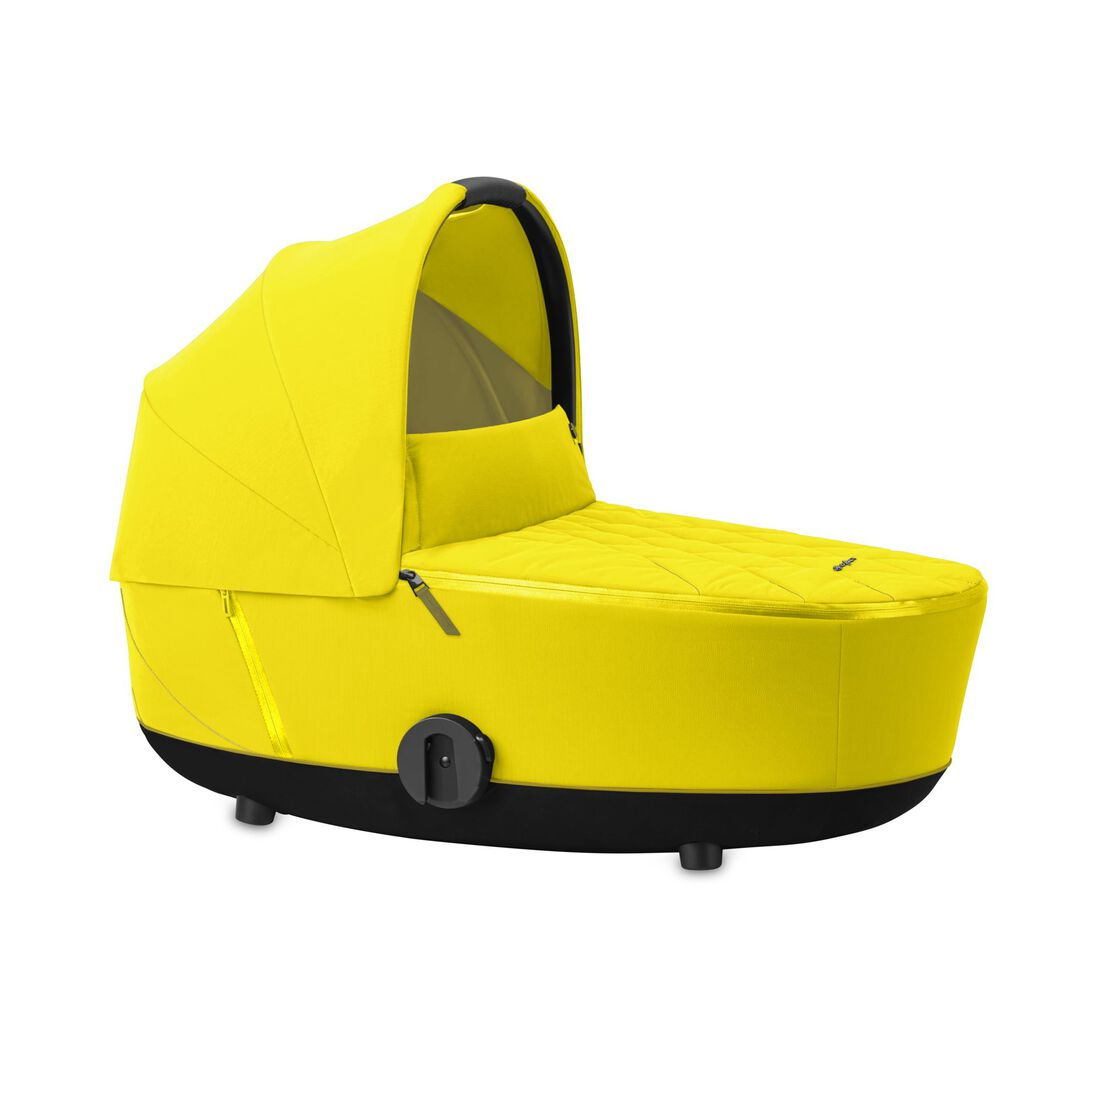 CYBEX Mios Lux Carry Cot - Mustard Yellow in Mustard Yellow large image number 1